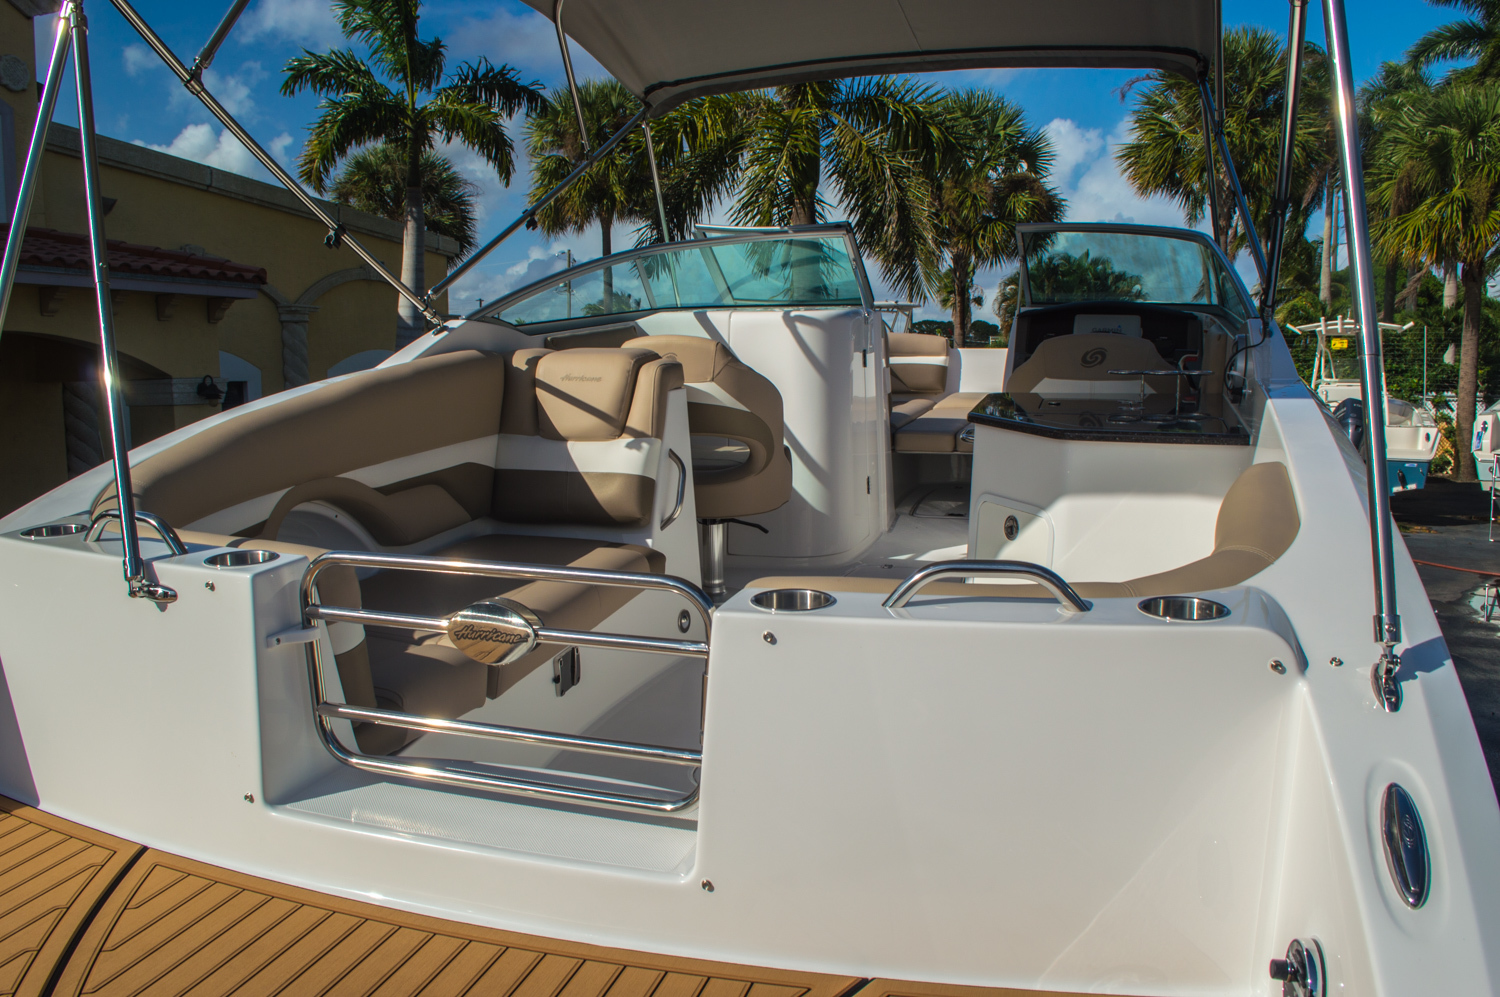 Thumbnail 21 for New 2016 Hurricane SunDeck SD 2690 OB boat for sale in West Palm Beach, FL